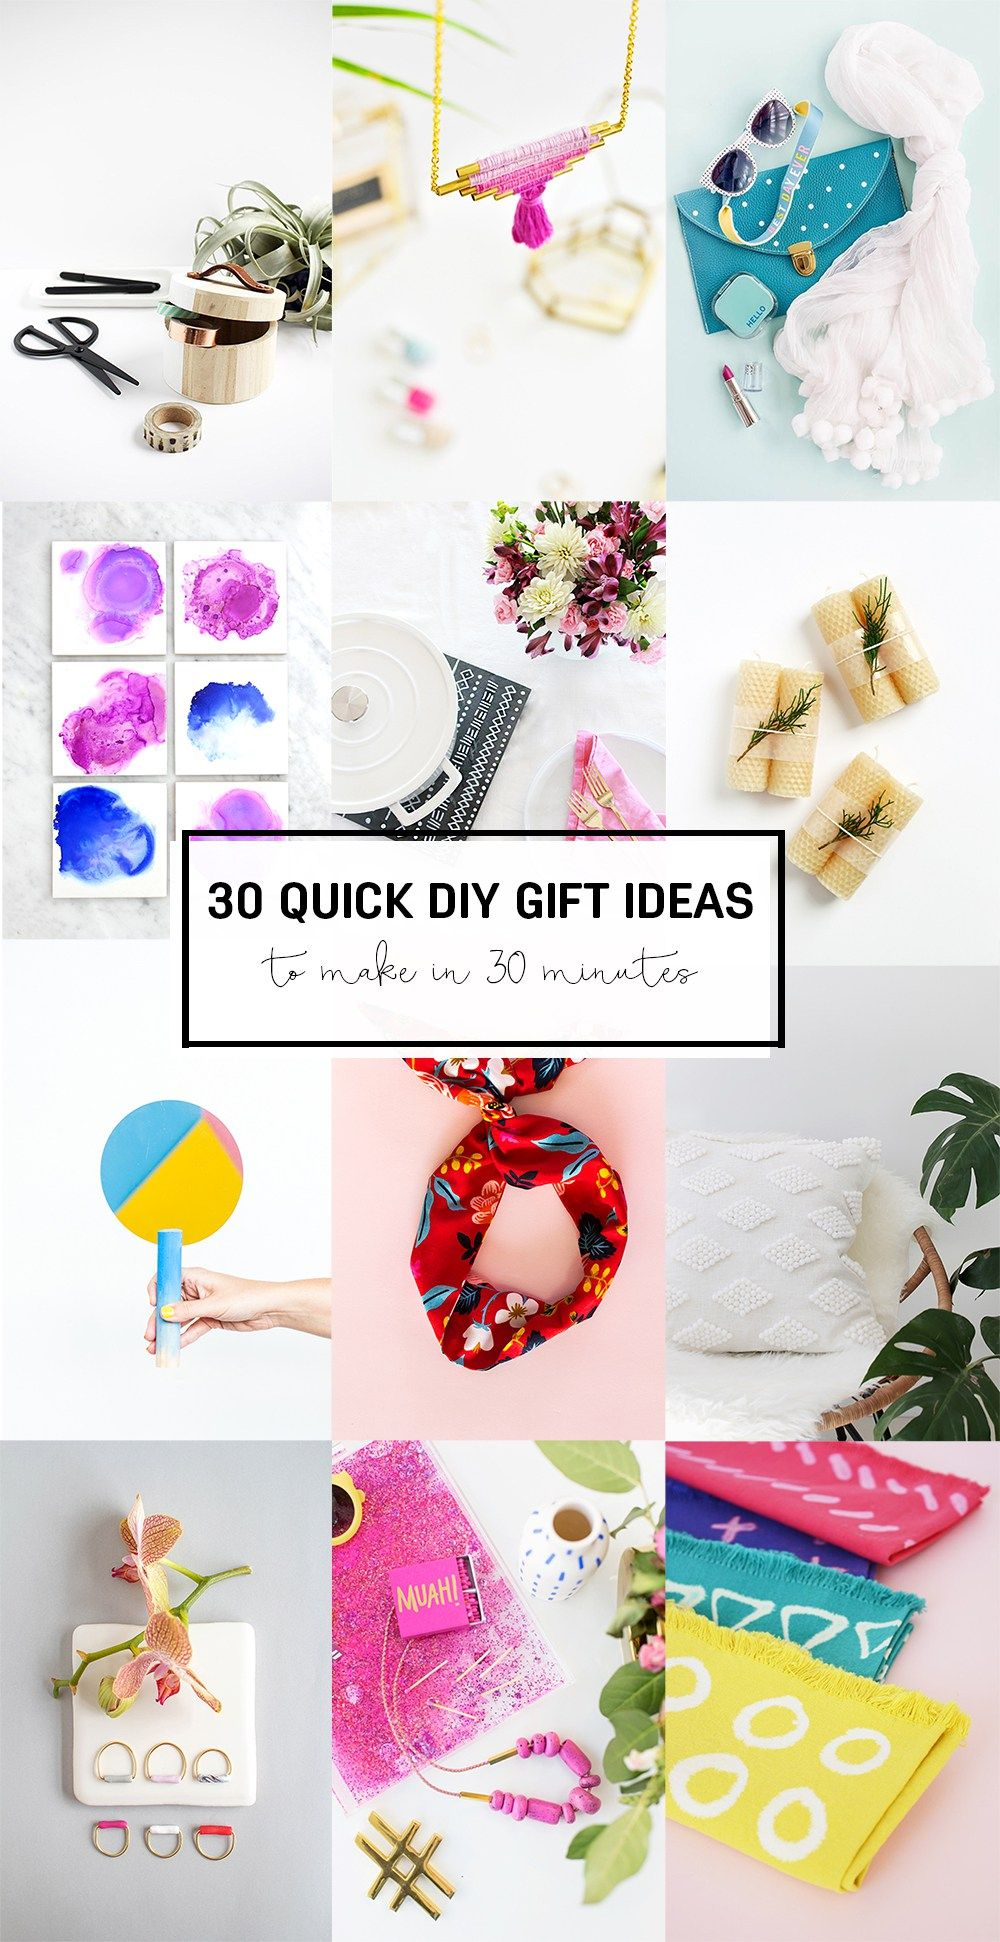 30 Quick DIY Gift Ideas to make in 30 minutes | Craft ideas, 30th ...